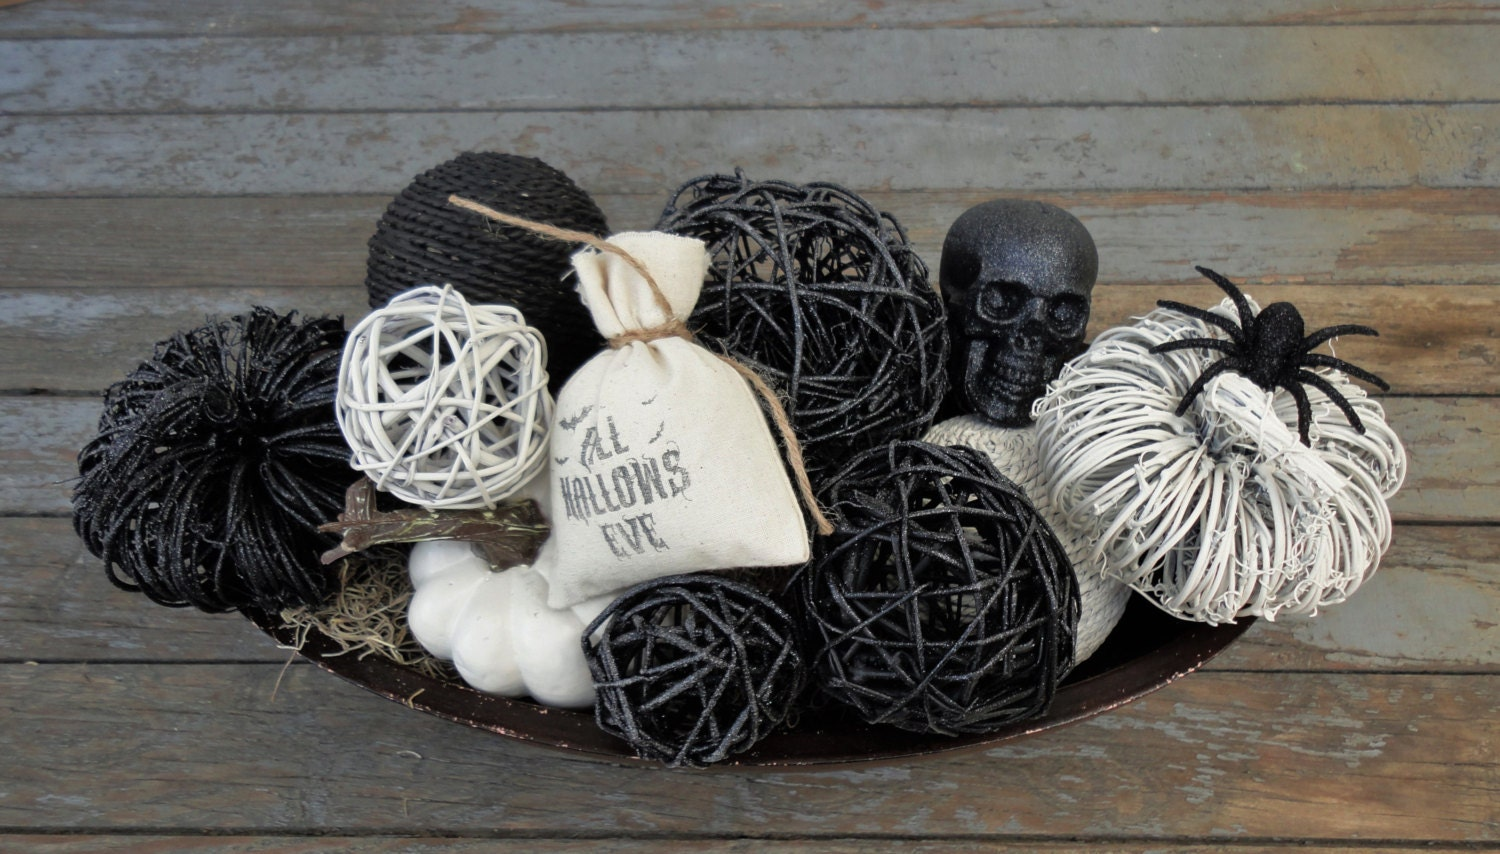 spooky chic bowl filler spooky chic halloween decor. Black Bedroom Furniture Sets. Home Design Ideas